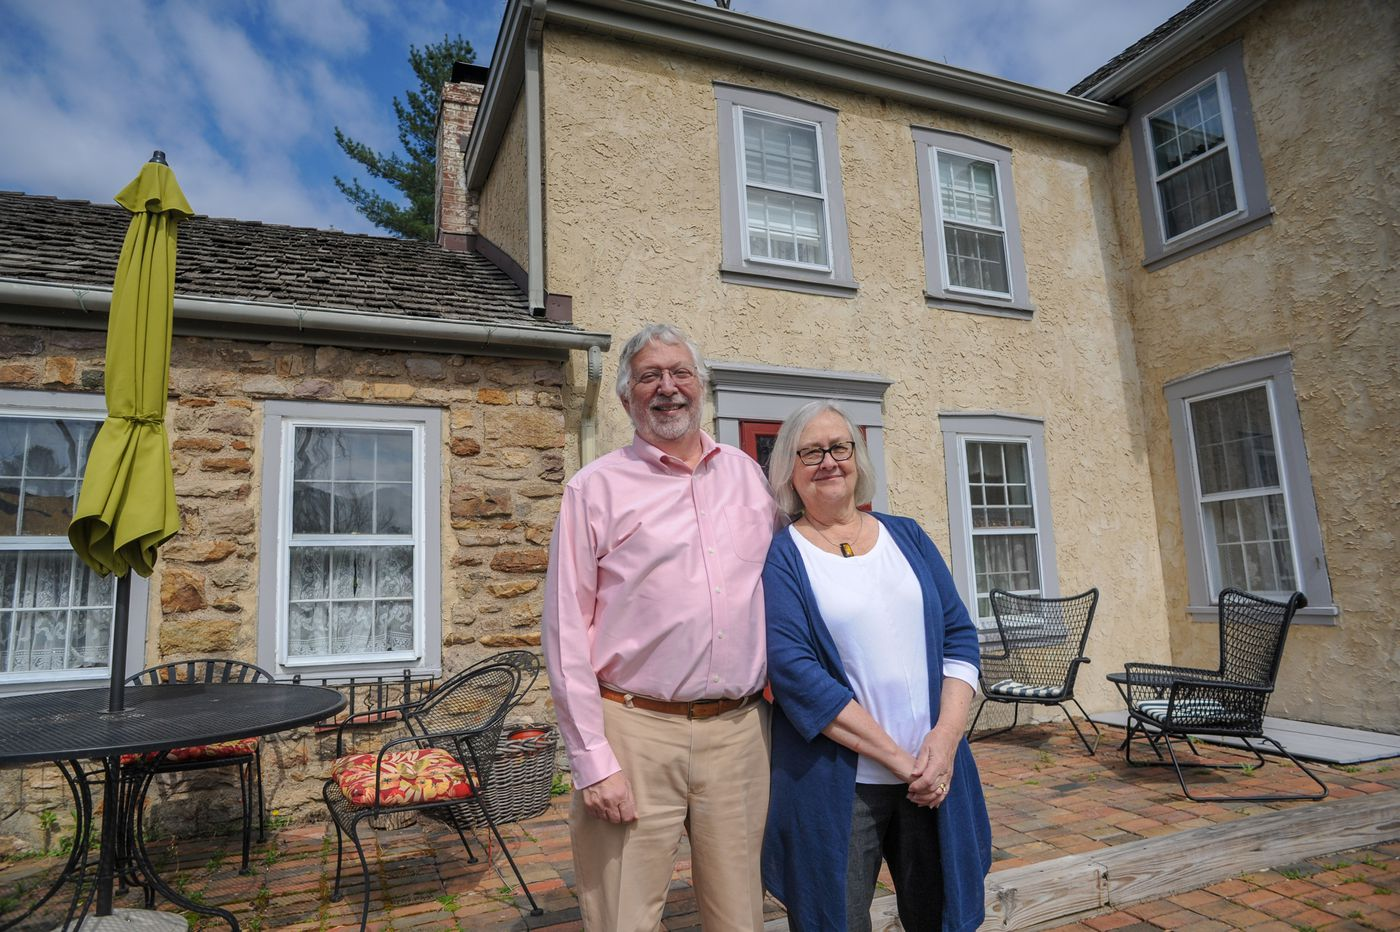 A Doylestown home that satisfies his and her retirement needs